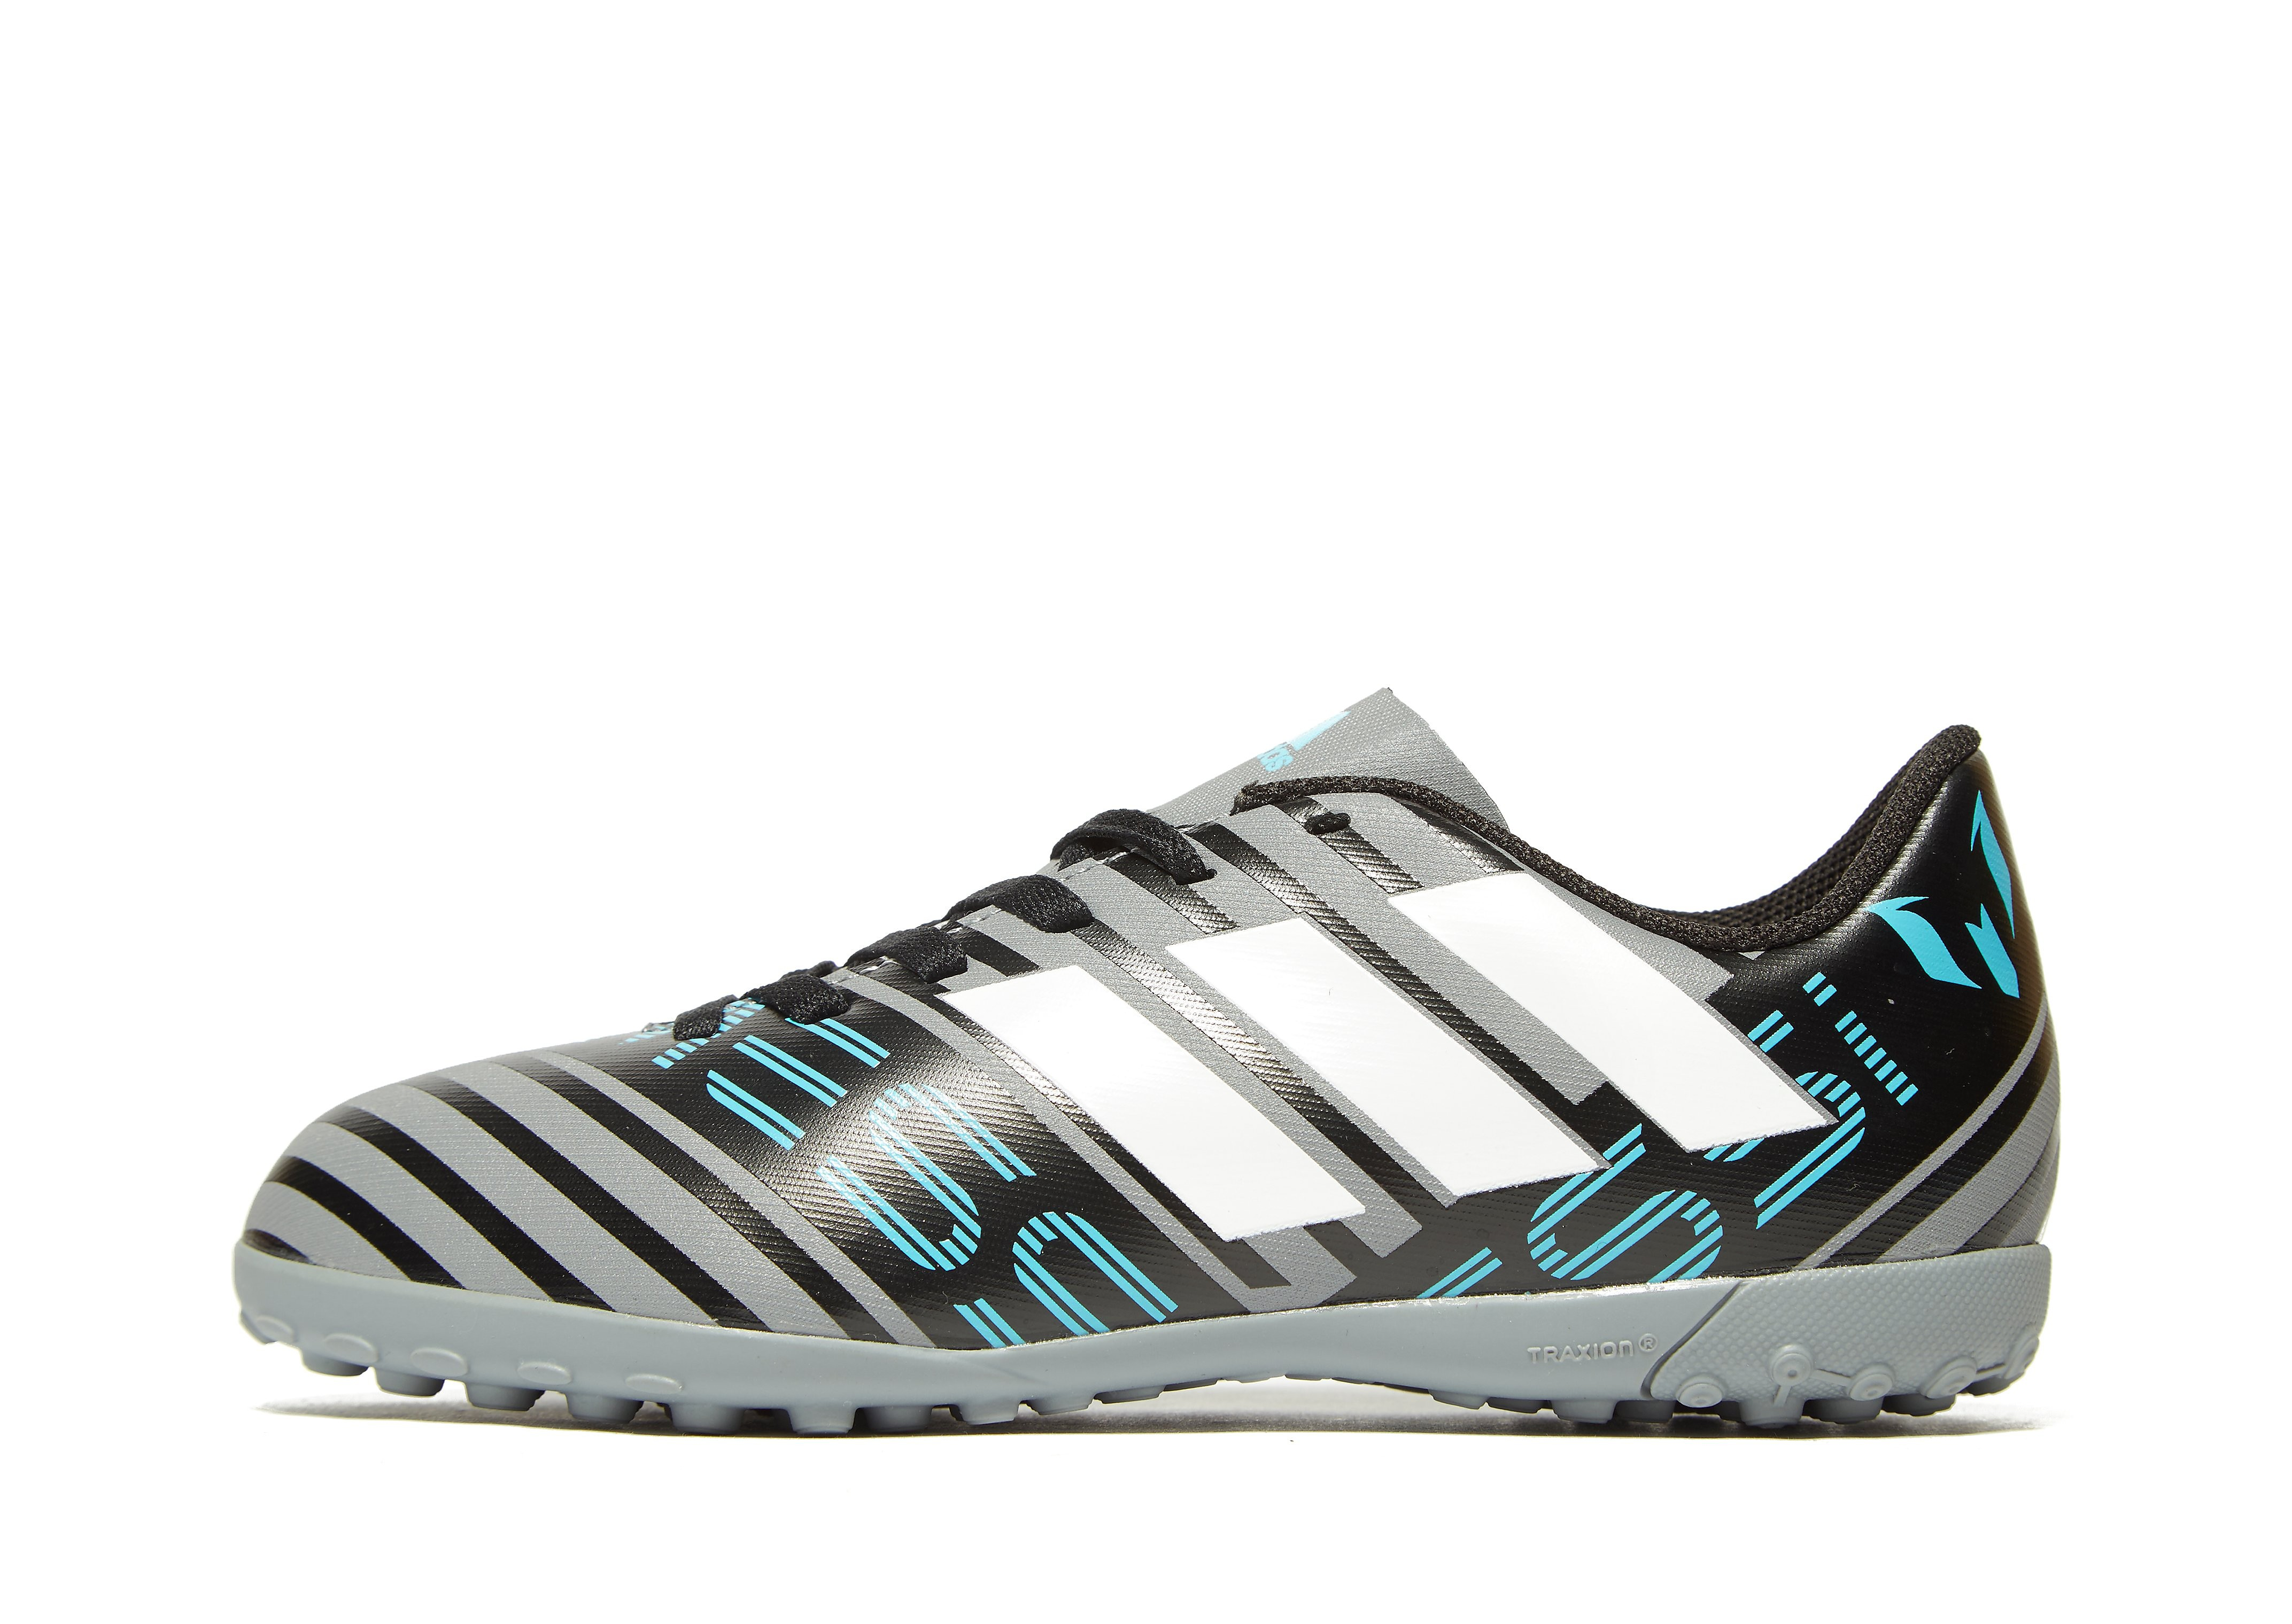 adidas Cold Blooded Nemeziz Messi 17.4 TF Children